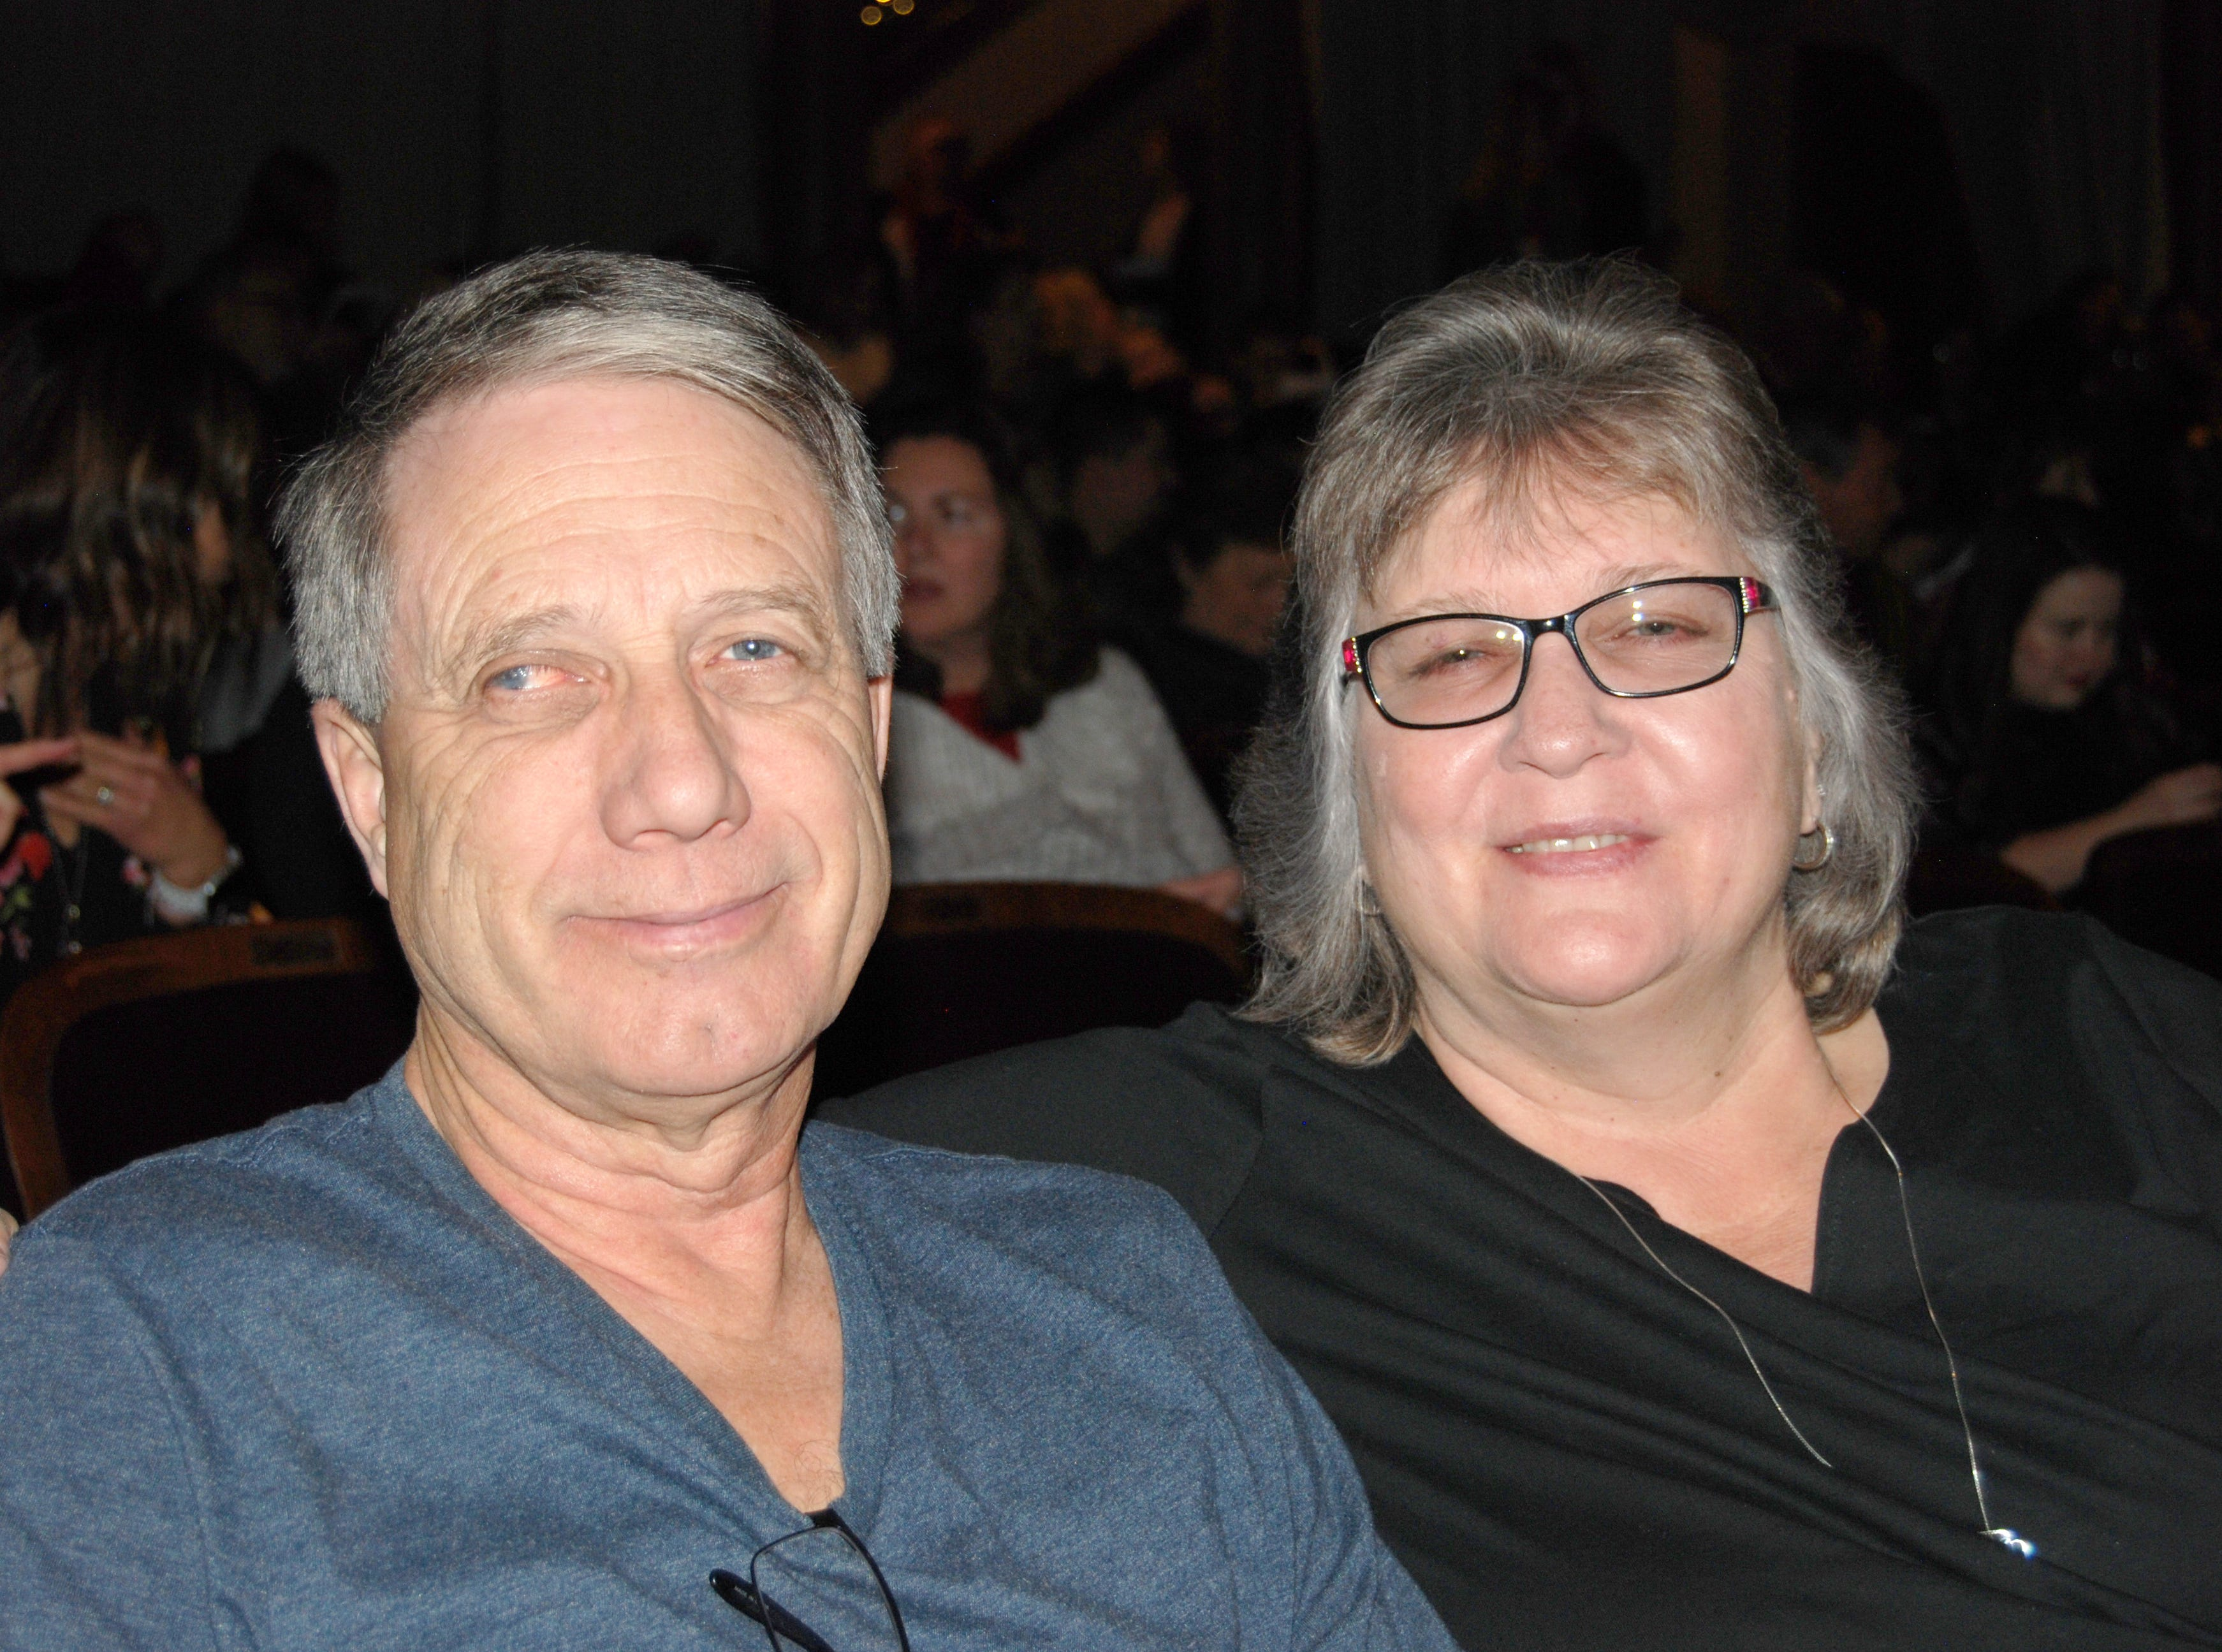 Vern and Brenda Haines